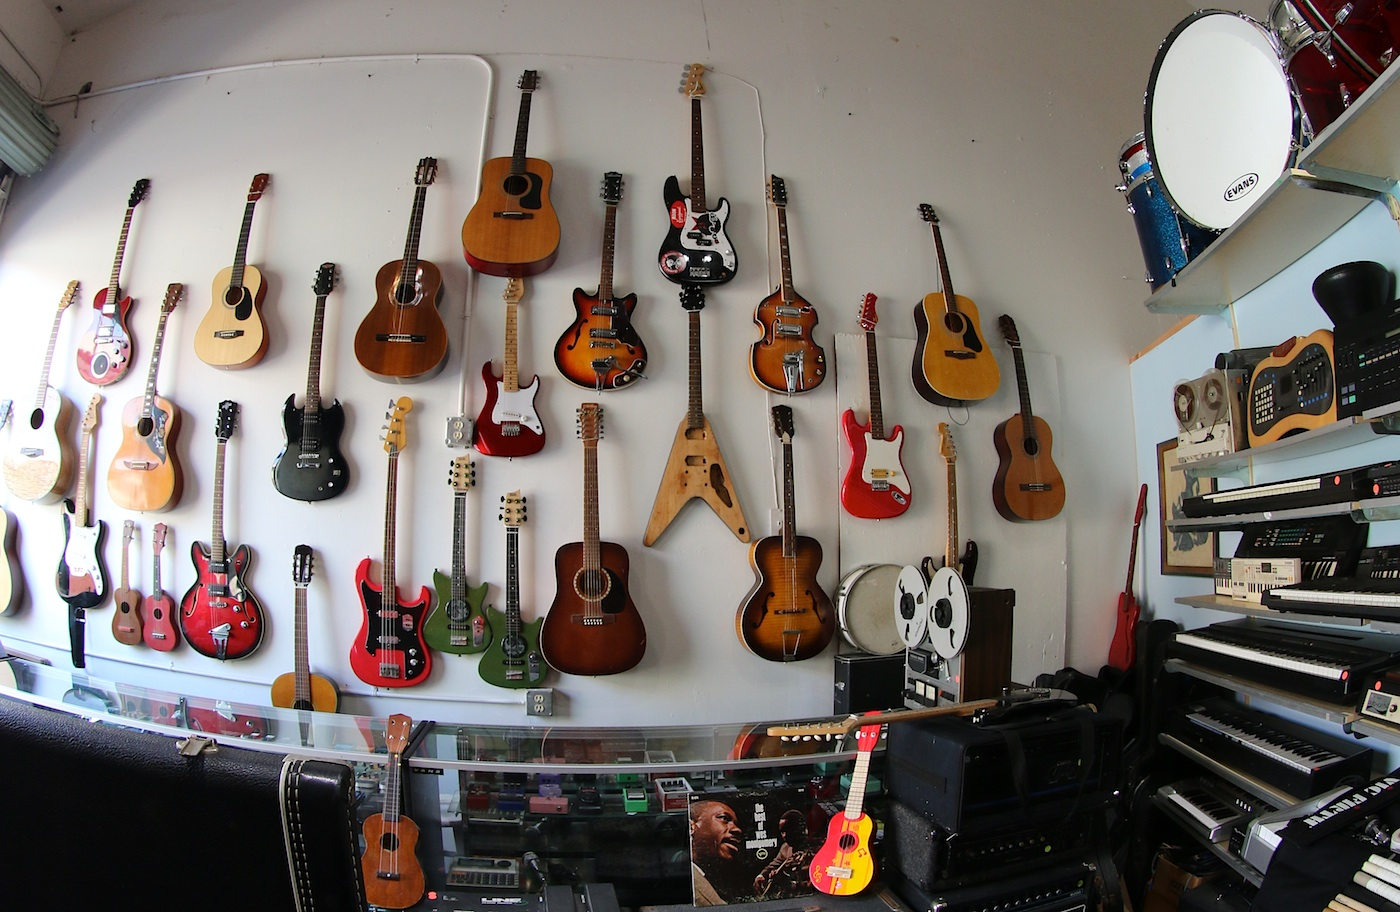 Door 4 Music is saling vintage and used music instruments, guitars, bass, drums, speakers, amplifier, microphones.... New music shop in Santa Barbara! Google street view trusted made by 805 Productions Santa Barbara.